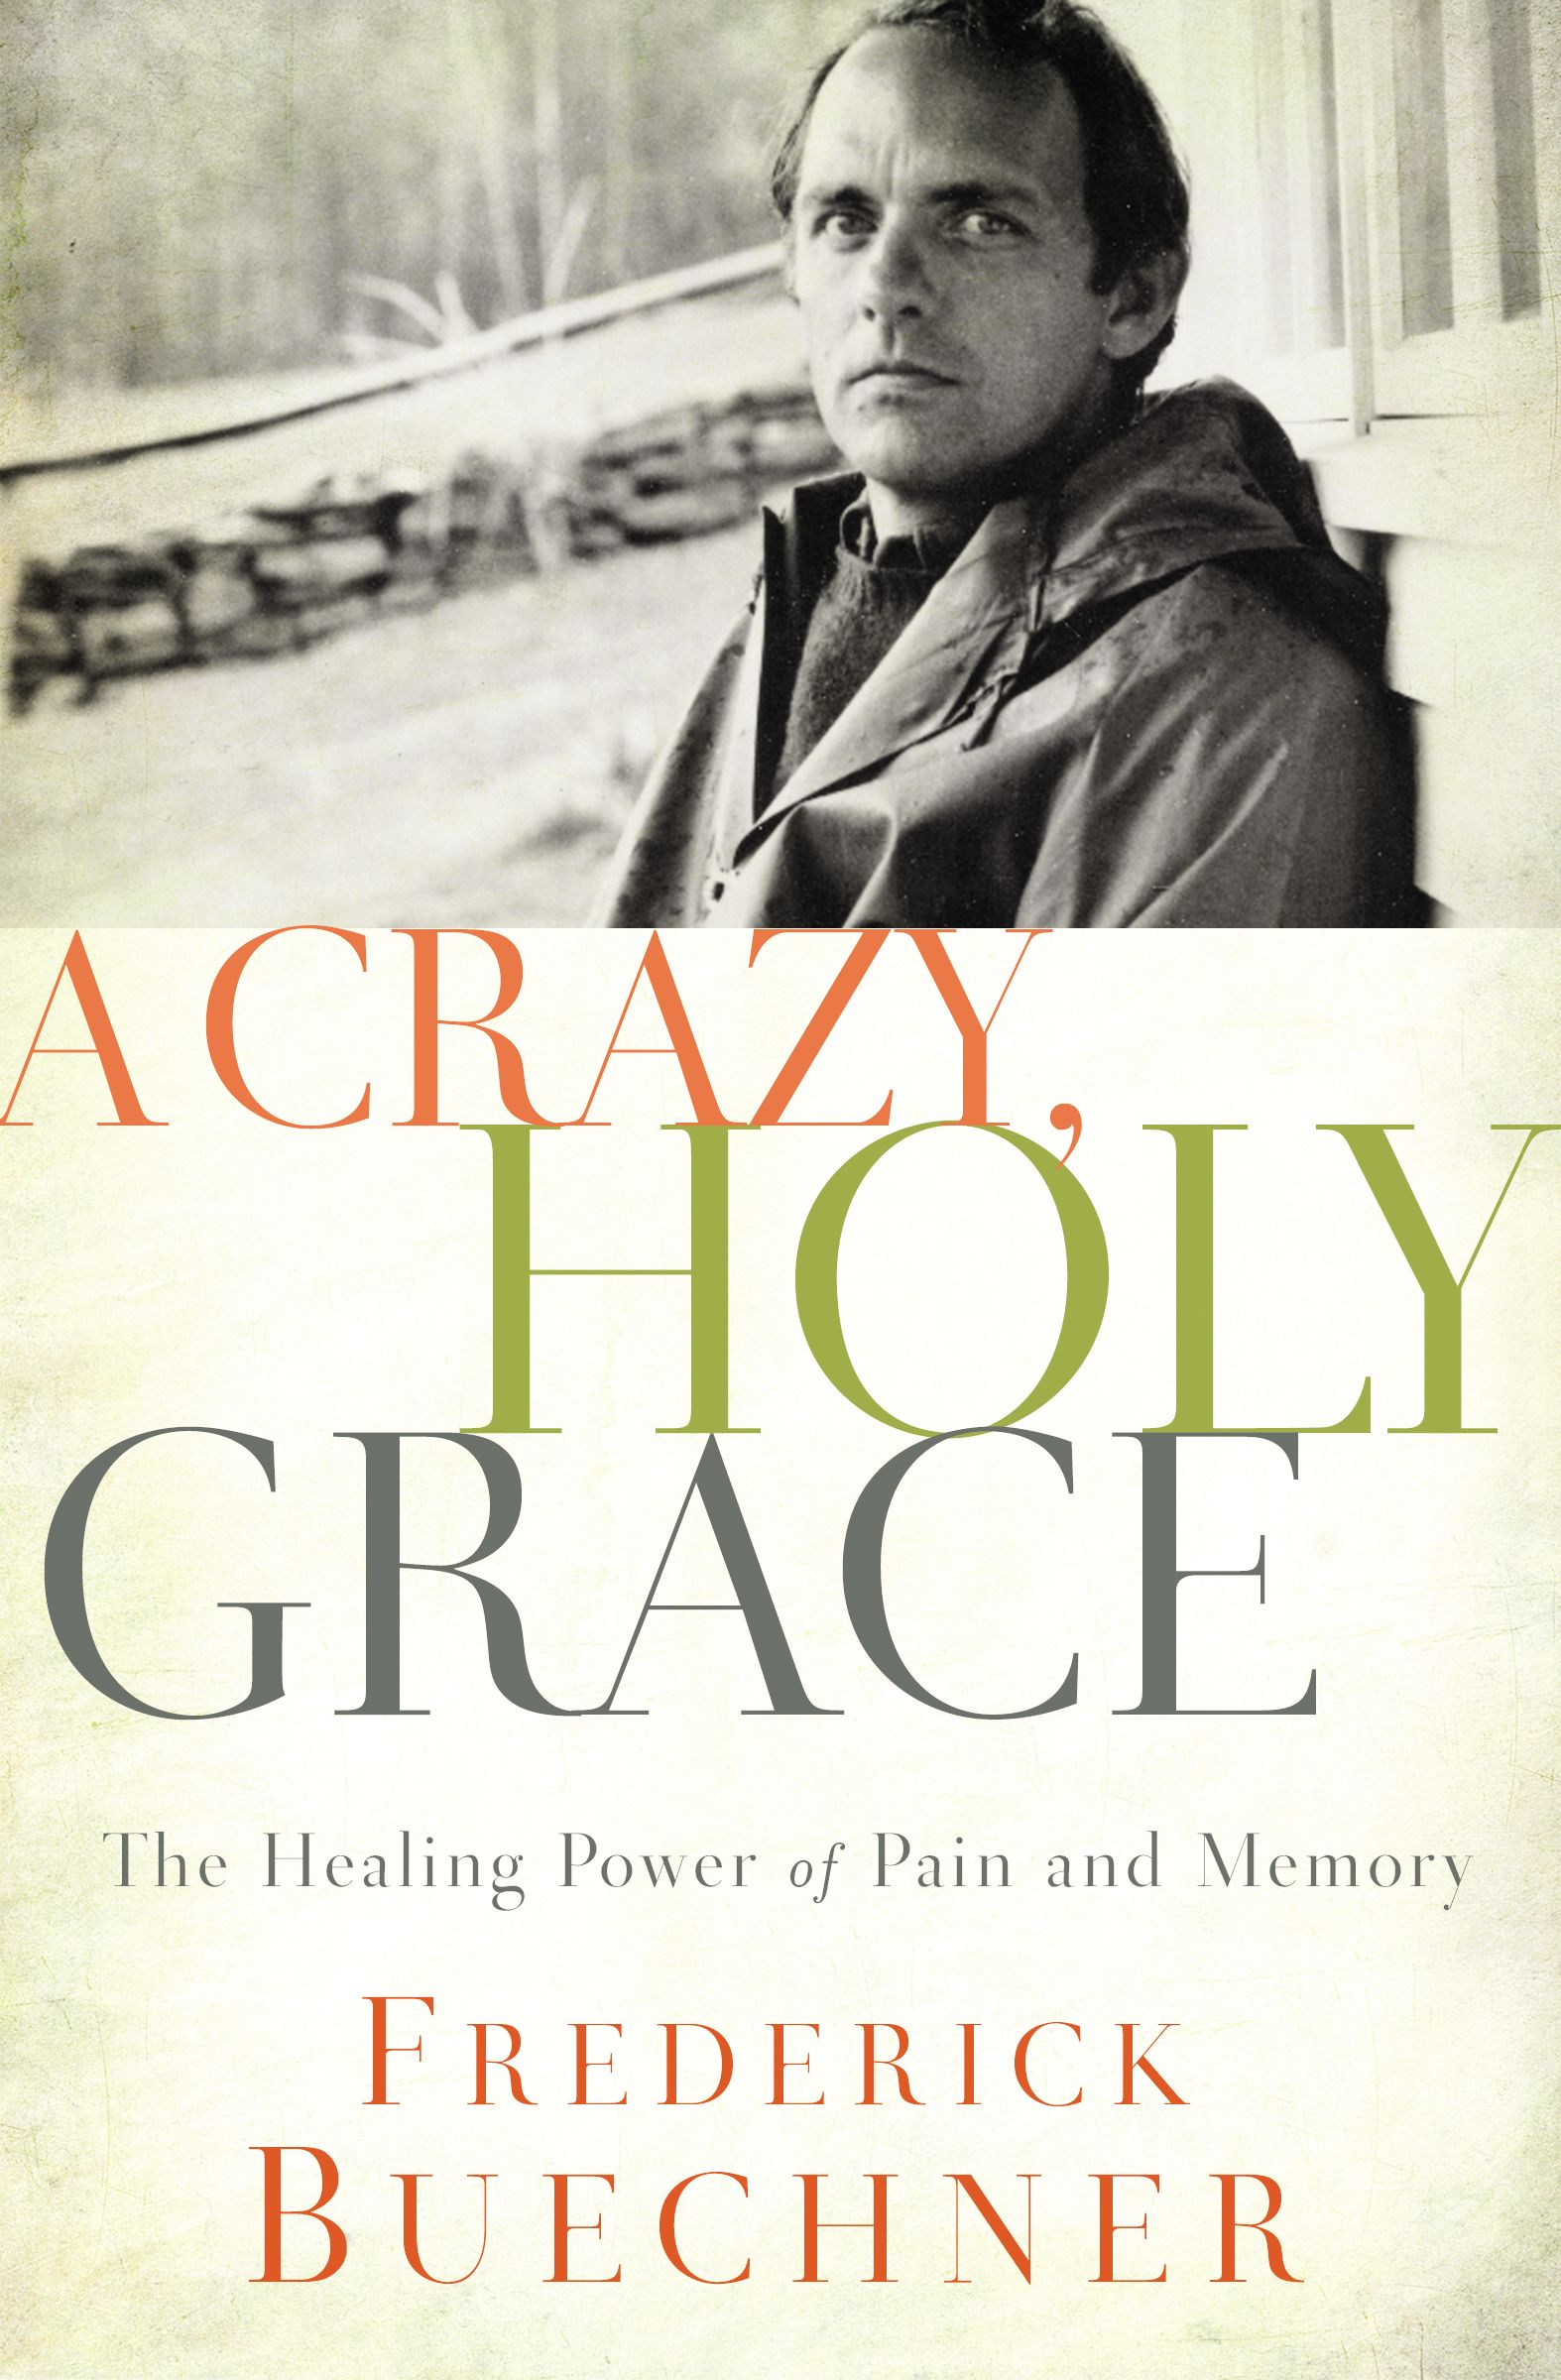 A Crazy, Holy Grace